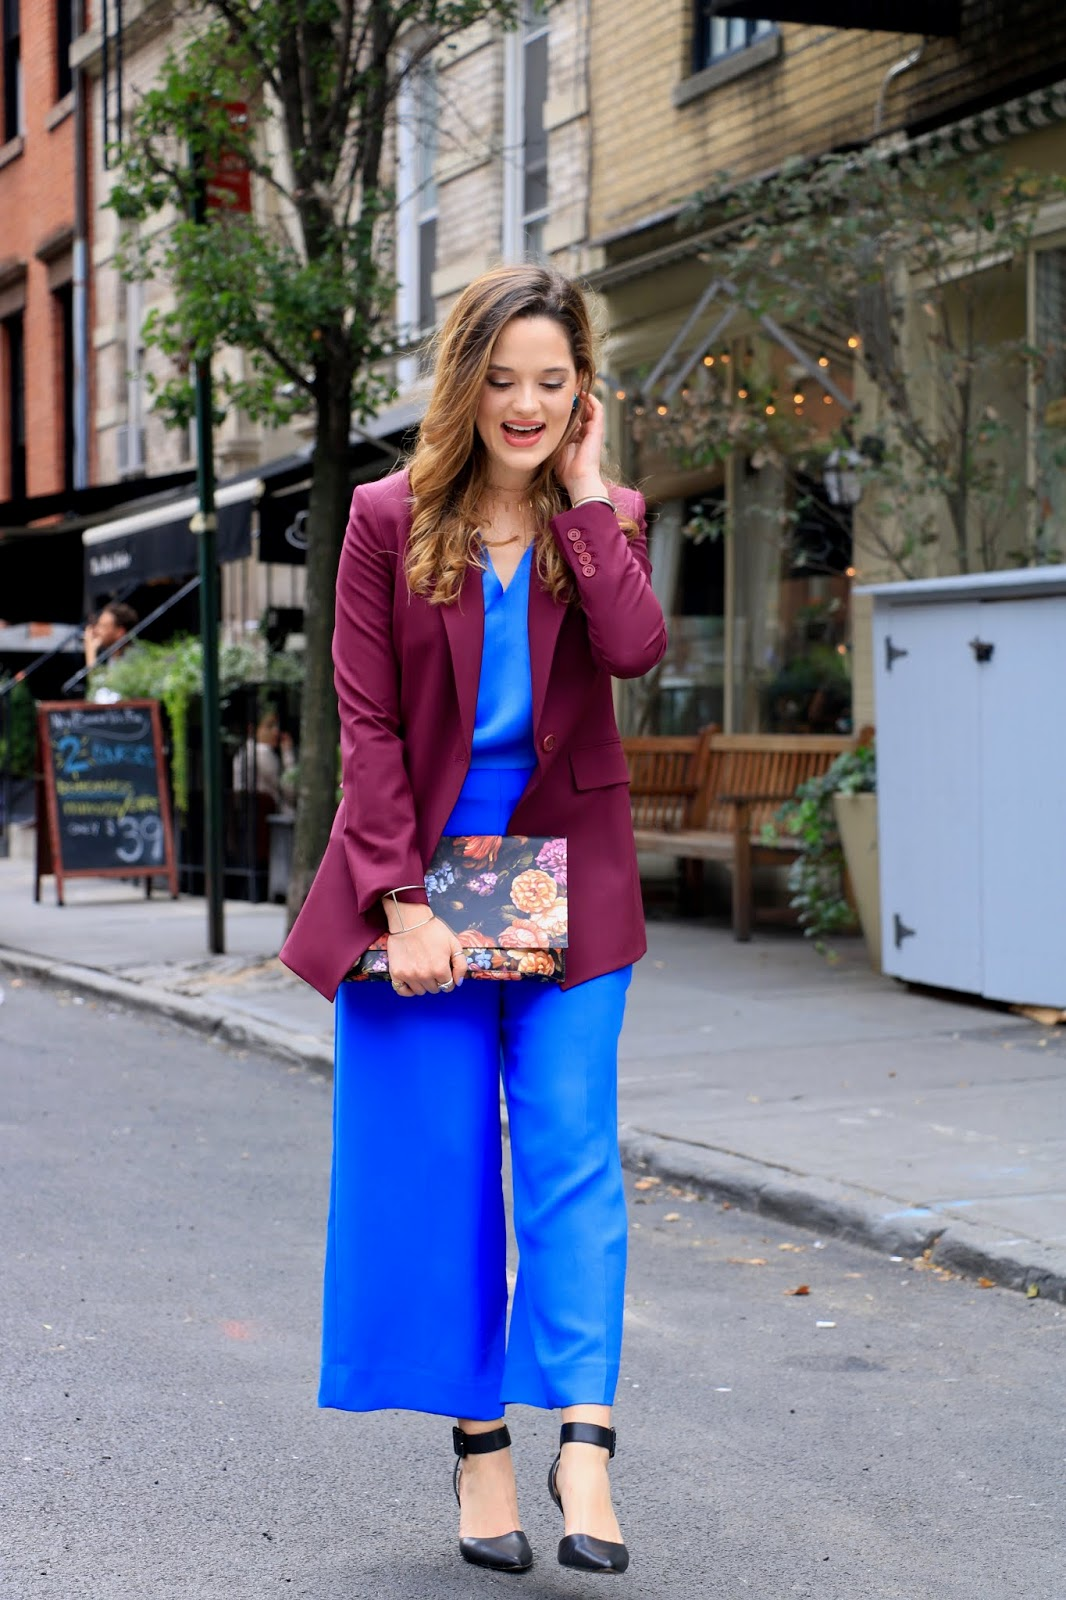 Nyc fashion blogger Kathleen Harper's street style